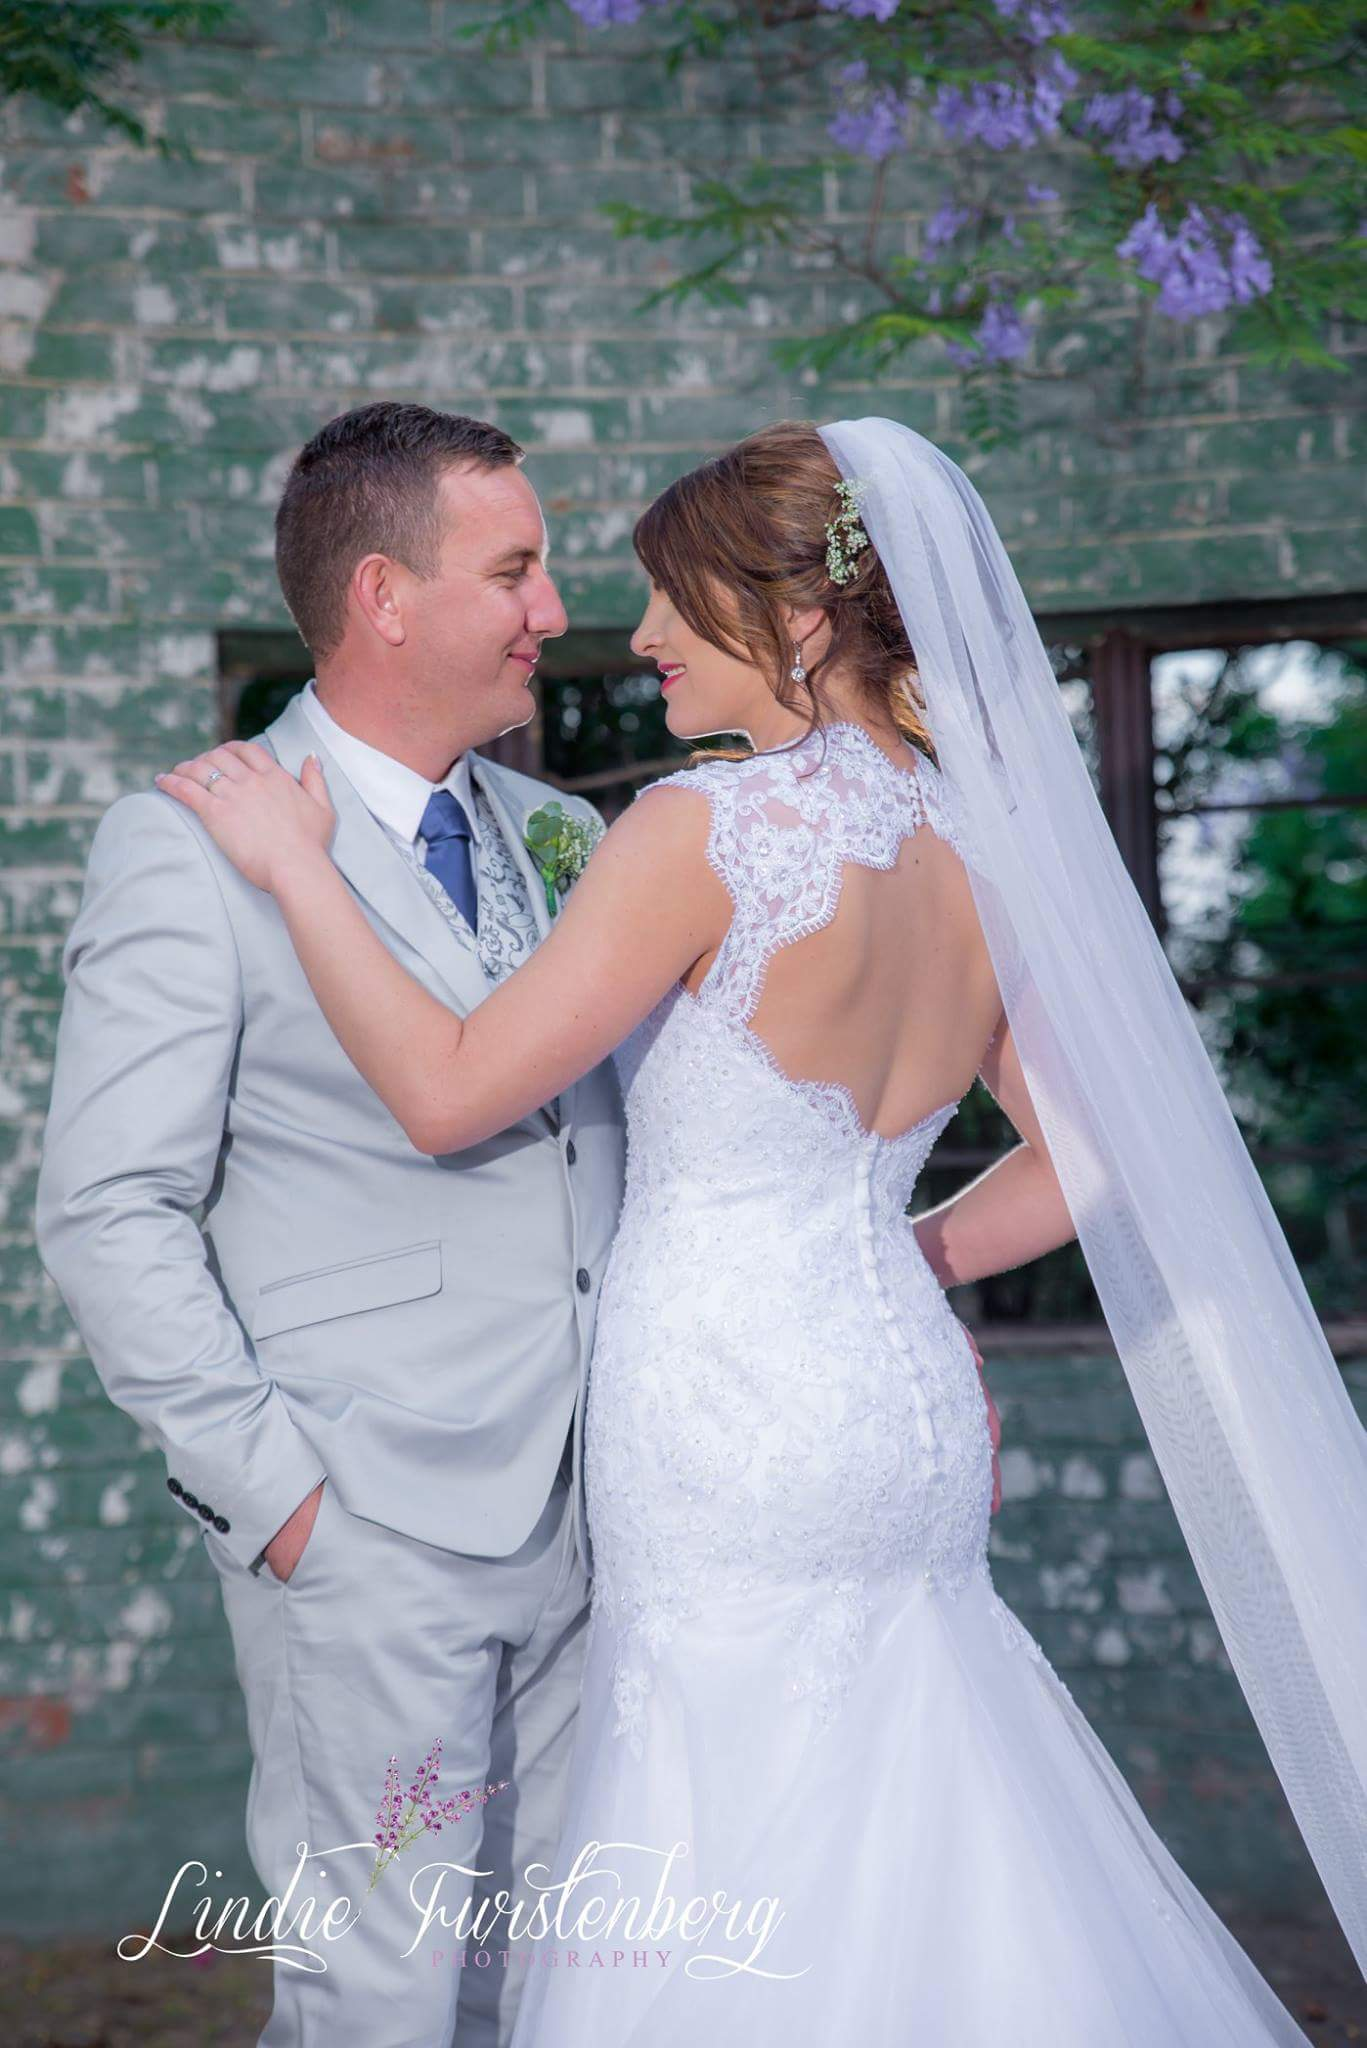 Wholesale Wedding Dresses Great Quality At Affordable Prices